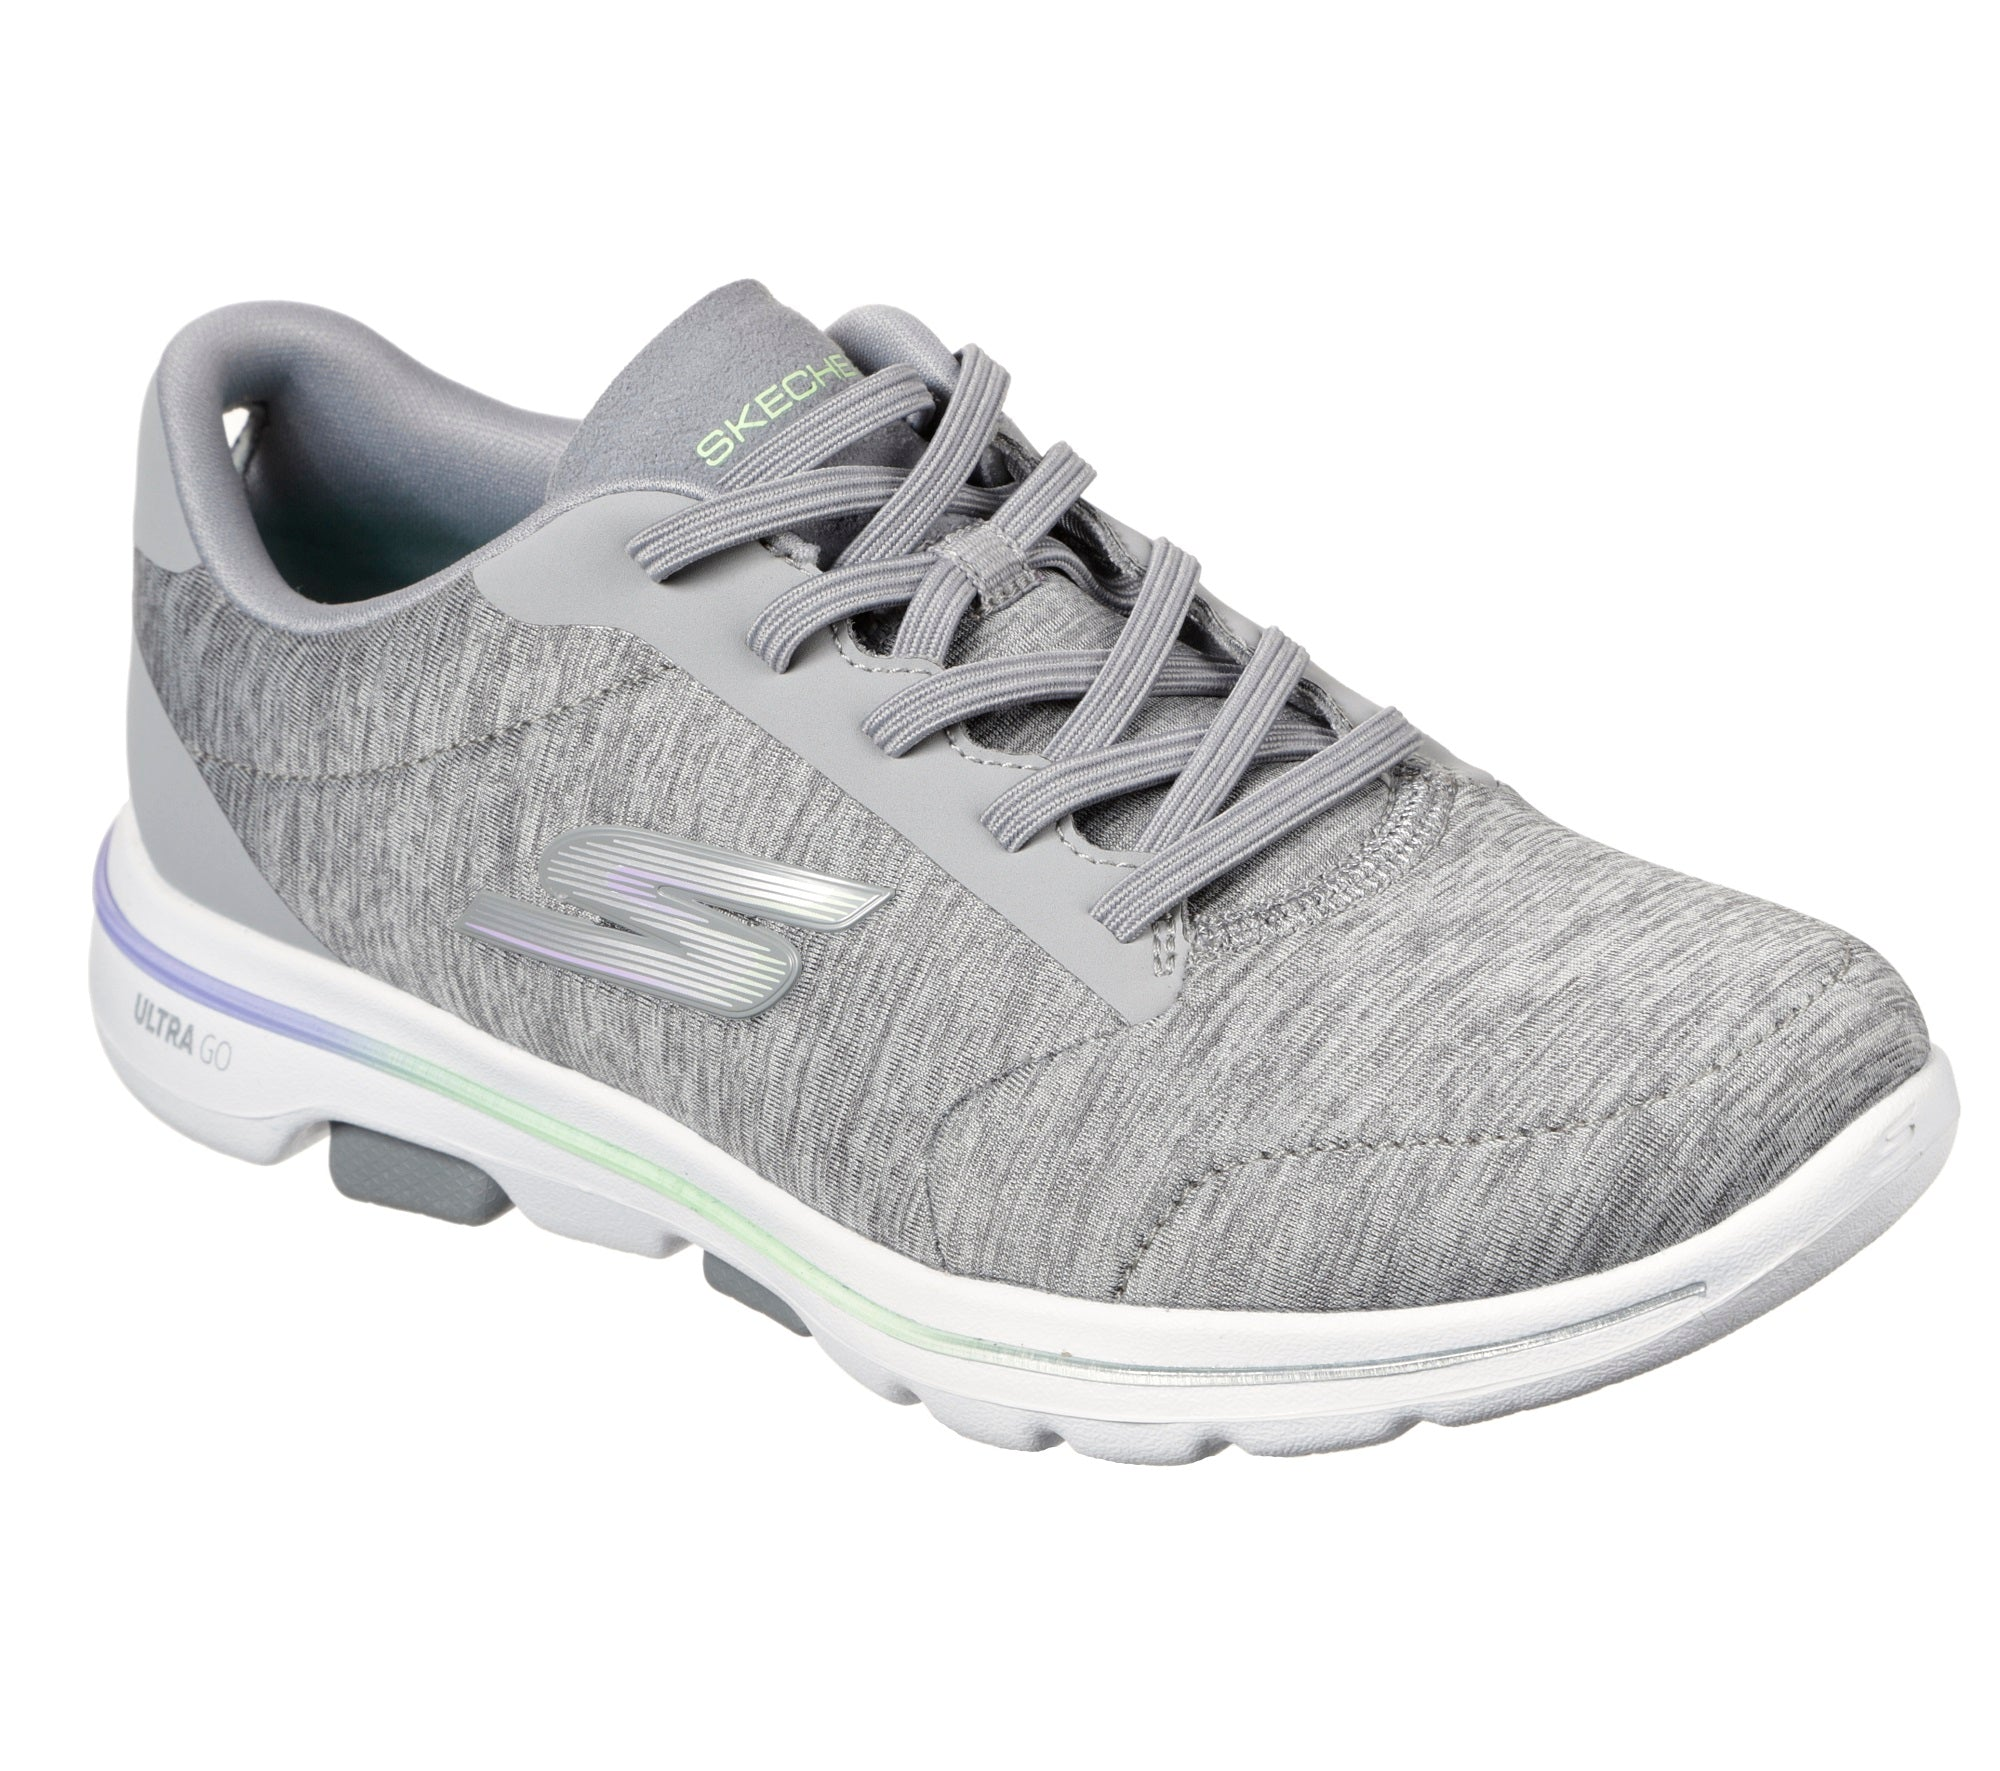 SKECHERS GO - LADIES GO WALK 5 PRODIGY 124025